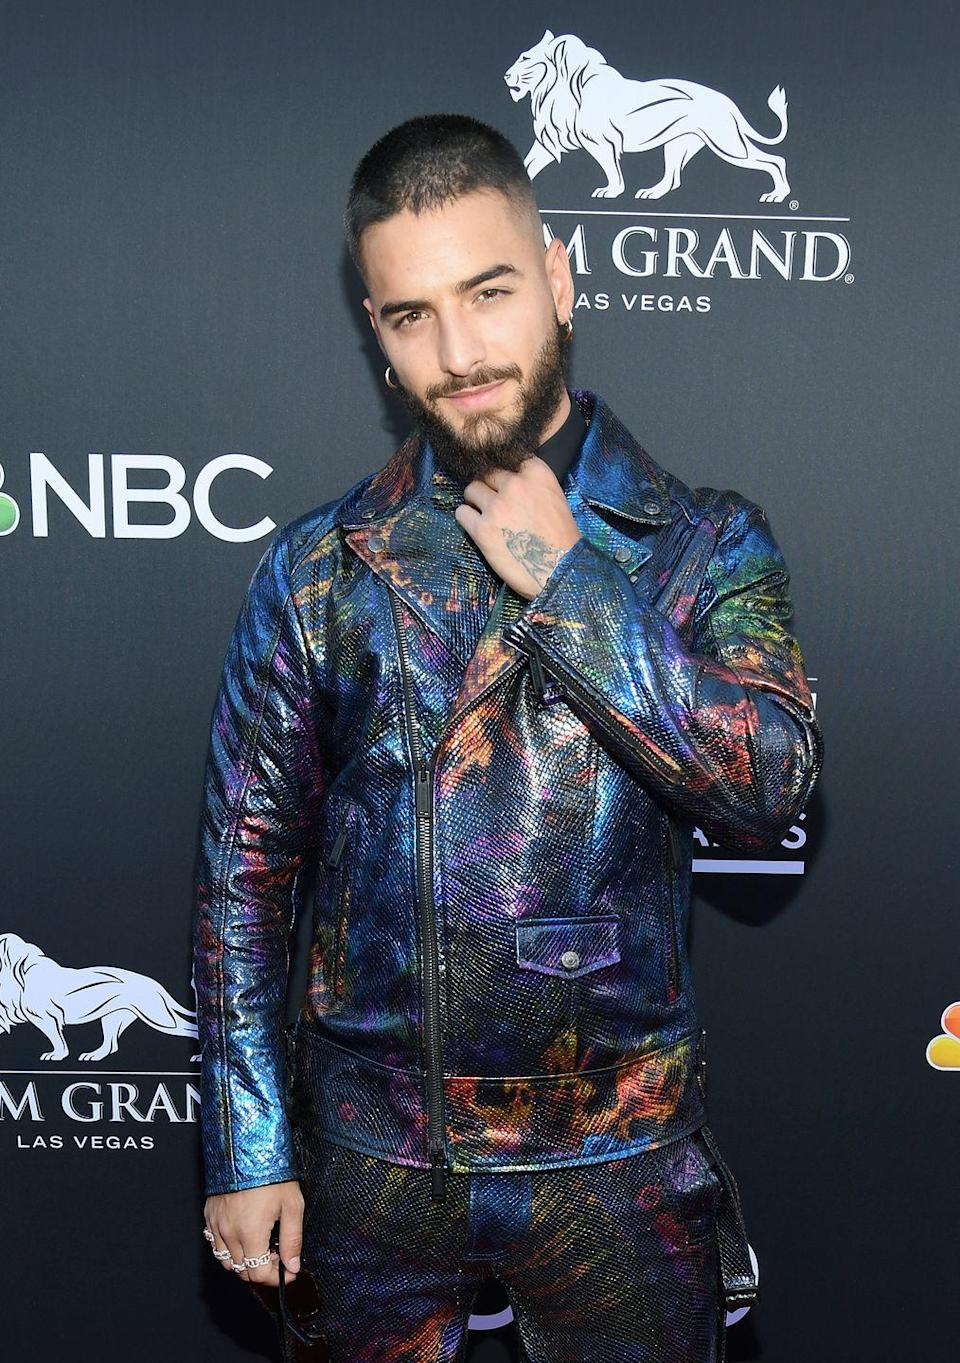 """<p>Maluma didn't bust onto the U.S. Latin Billboard charts until 2014 with """"La Temperatura,"""" but he fought for his stardom. The lead single from his first album, <em>Magia</em>, was called """"Farandulera"""" but didn't make many waves. He's more than made up for that in recent years.</p><p><a class=""""link rapid-noclick-resp"""" href=""""https://www.amazon.com/Farandulera-Album-Version/dp/B016YW7DUC/ref=sr_1_1?tag=syn-yahoo-20&ascsubtag=%5Bartid%7C10063.g.30535280%5Bsrc%7Cyahoo-us"""" rel=""""nofollow noopener"""" target=""""_blank"""" data-ylk=""""slk:BUY NOW"""">BUY NOW</a></p>"""